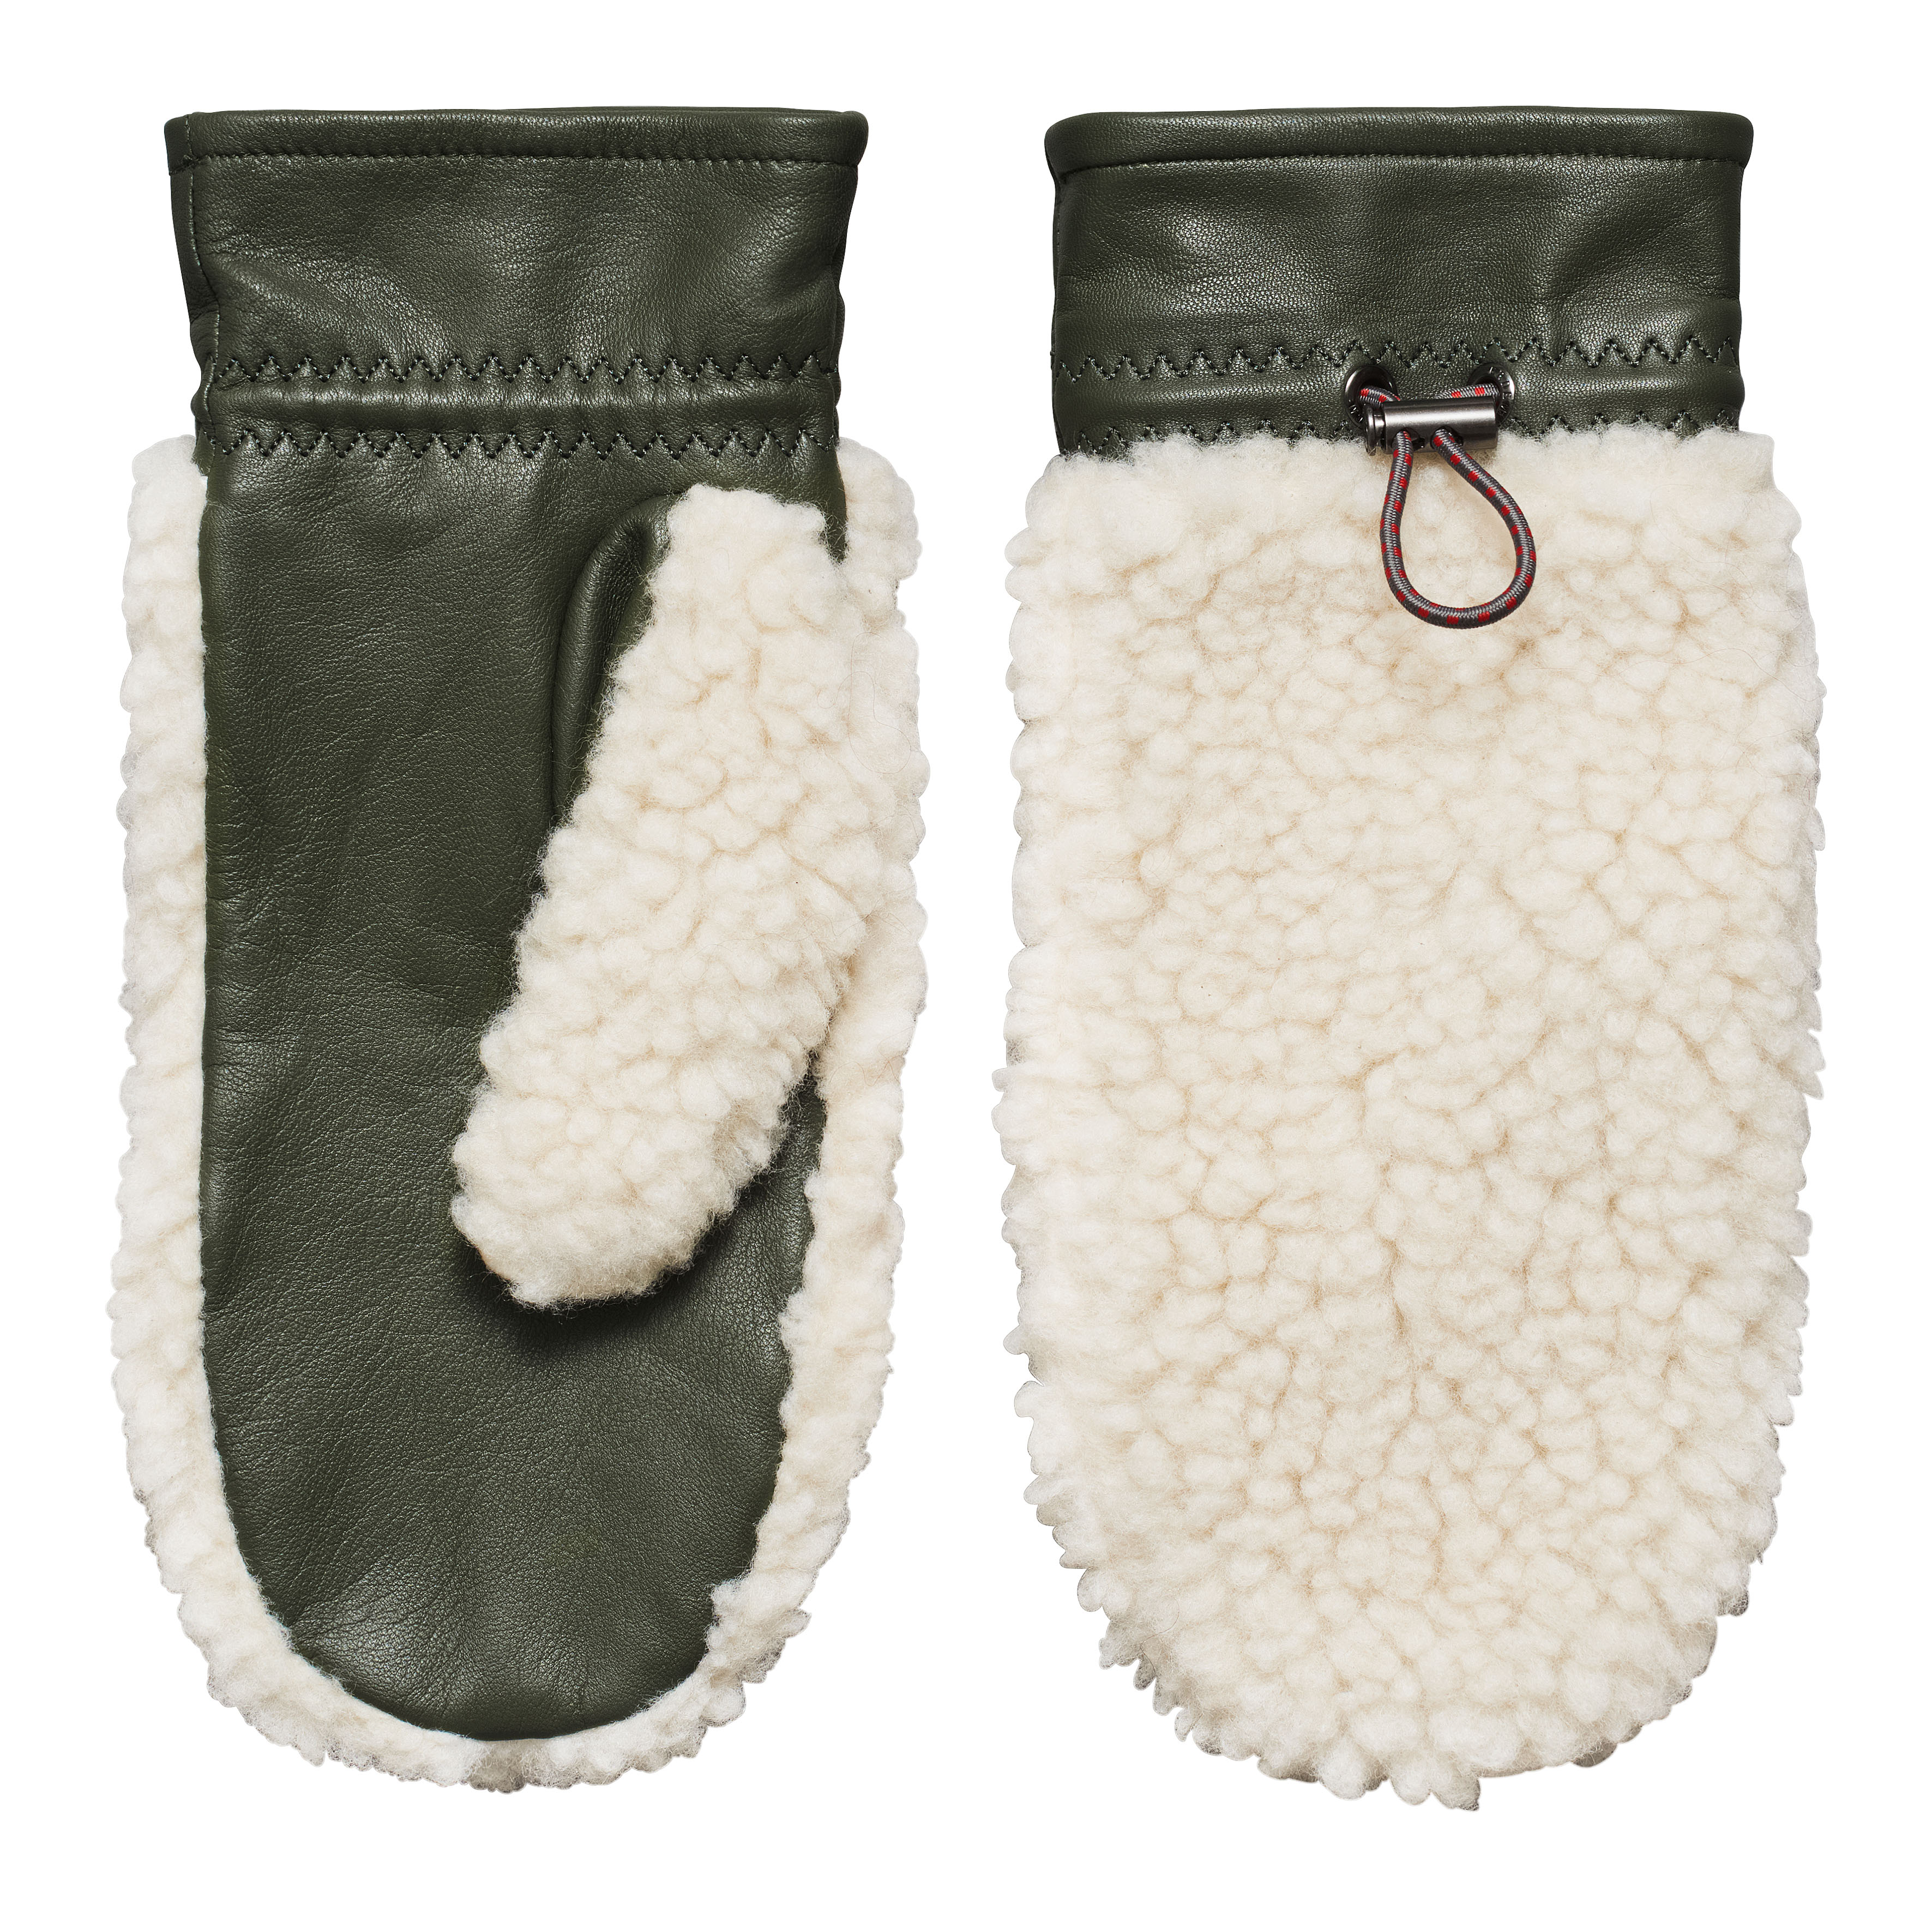 H&M _Erdem_Men_Danny_Gloves_49,99EUR